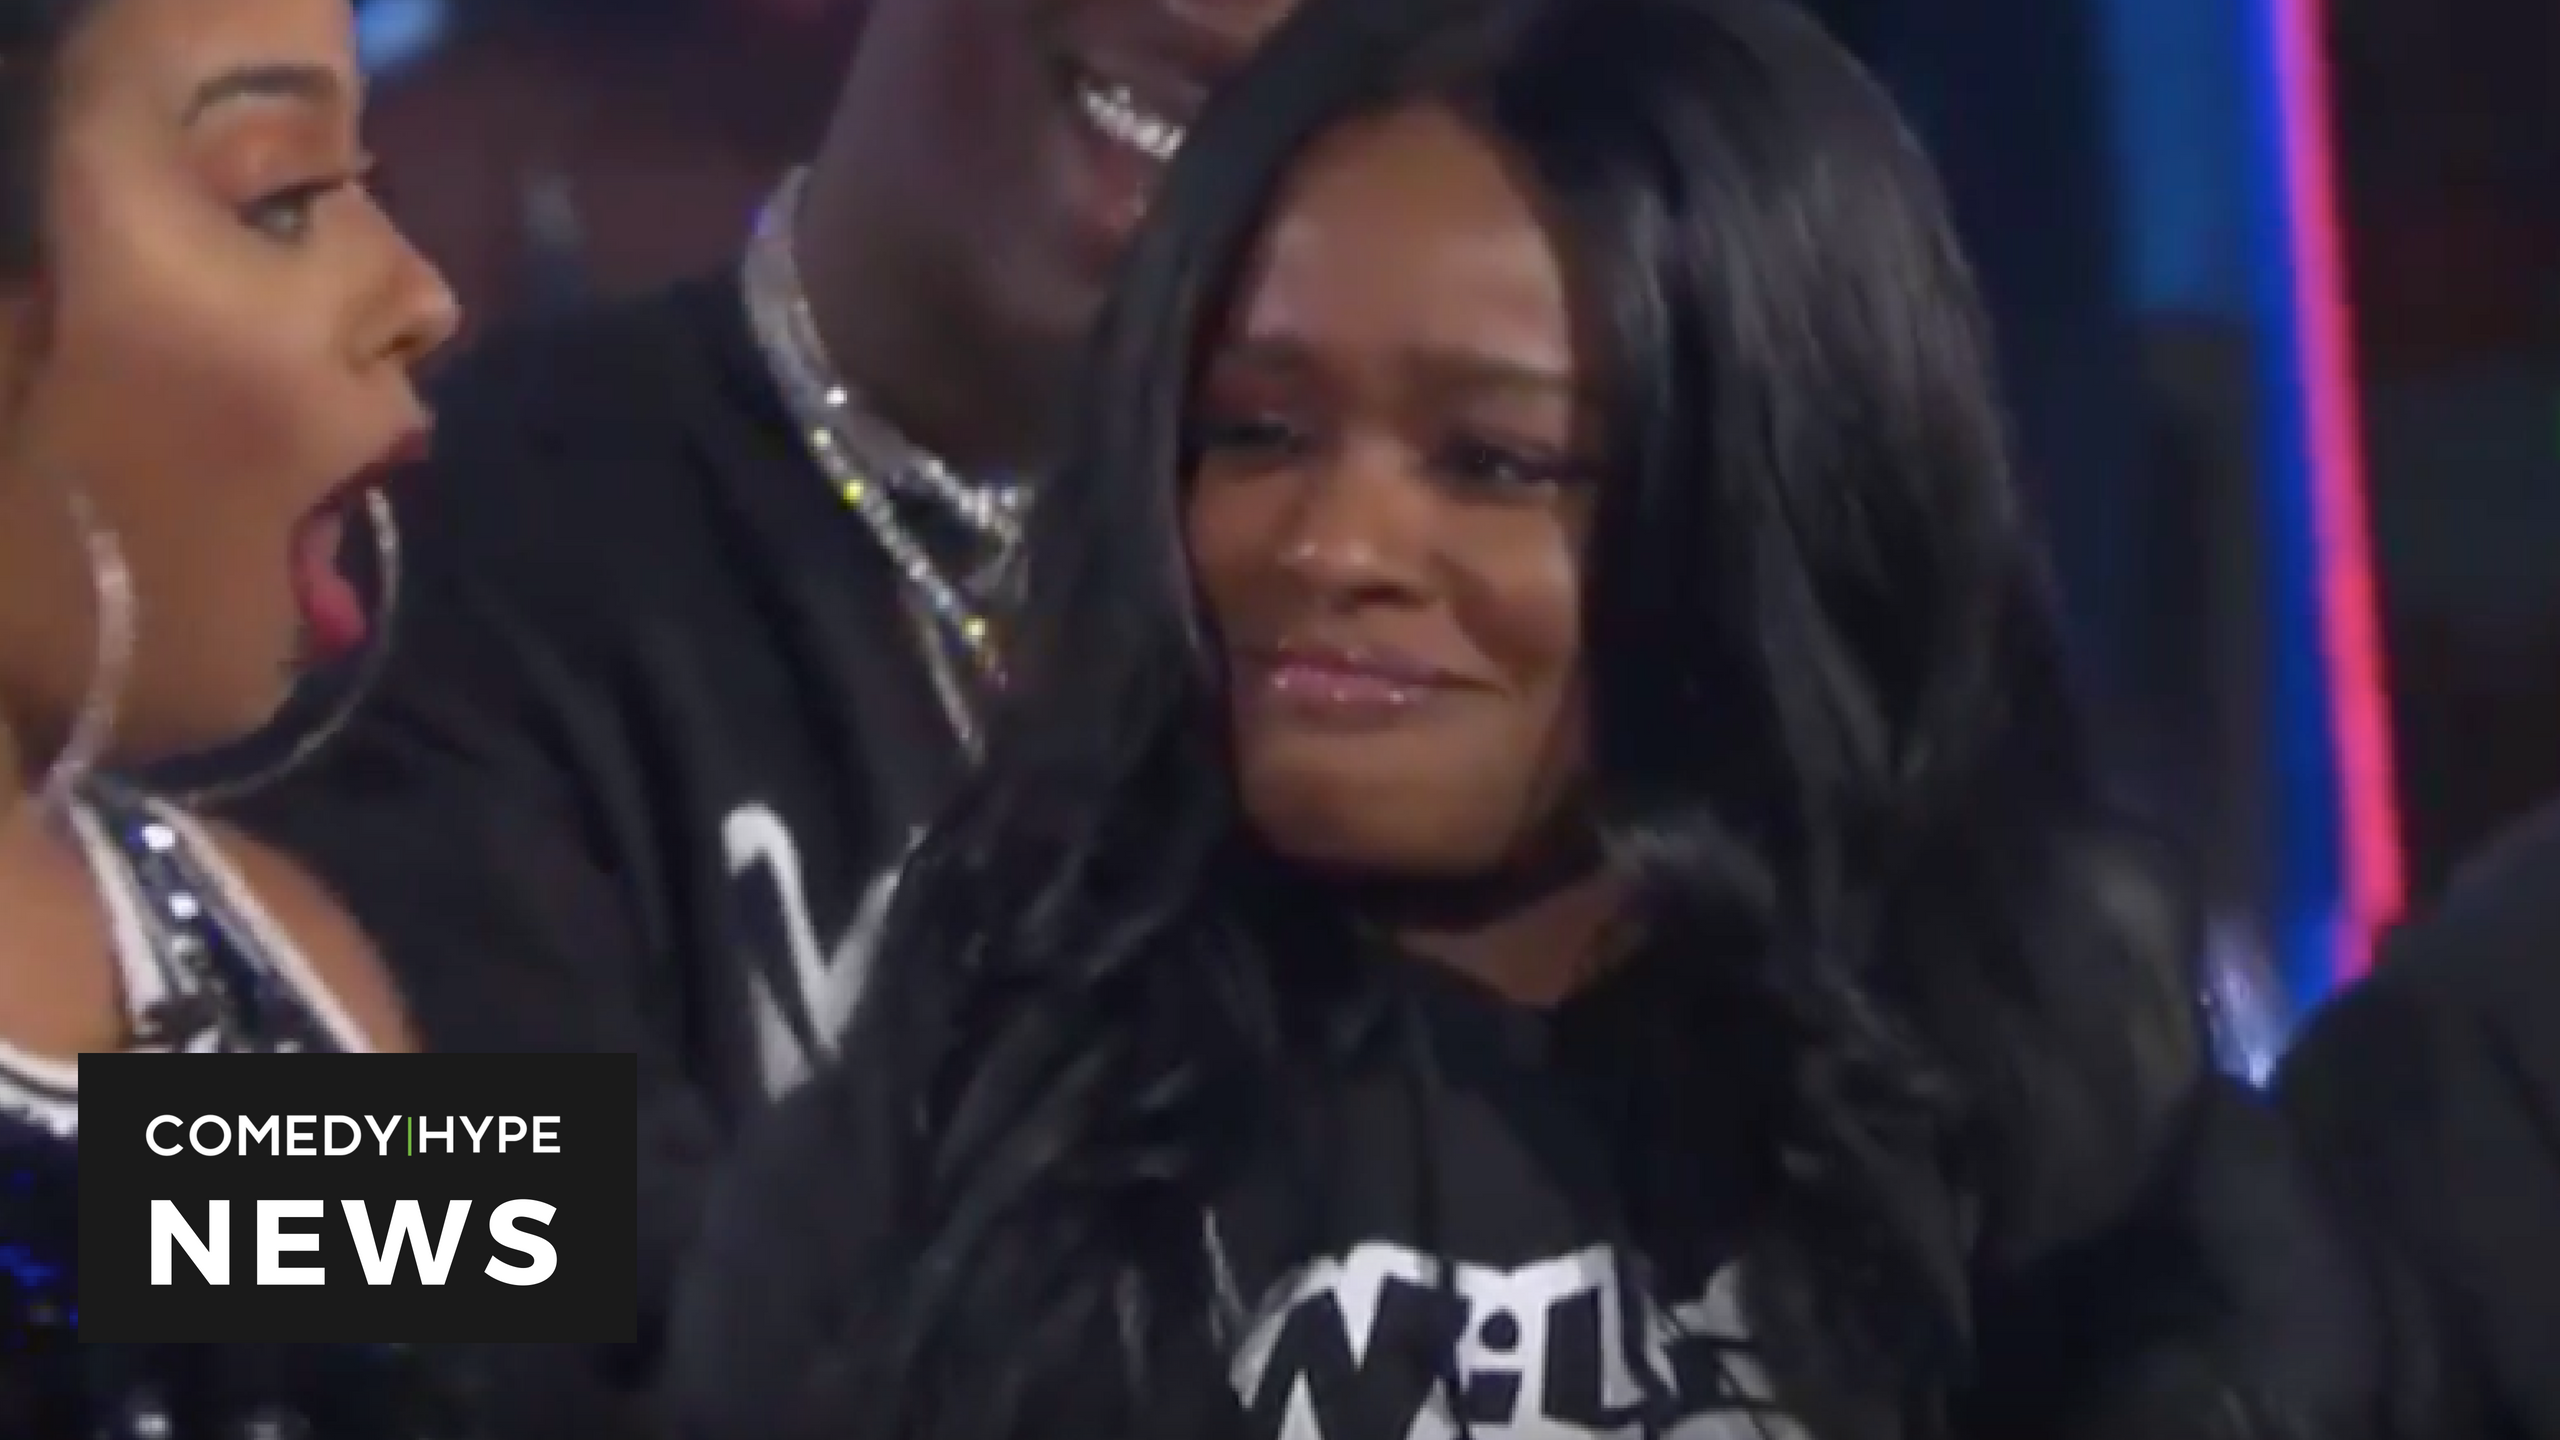 Footage Released Of DC Young Fly Roasting Azealia Banks On Wild N 2560x1440